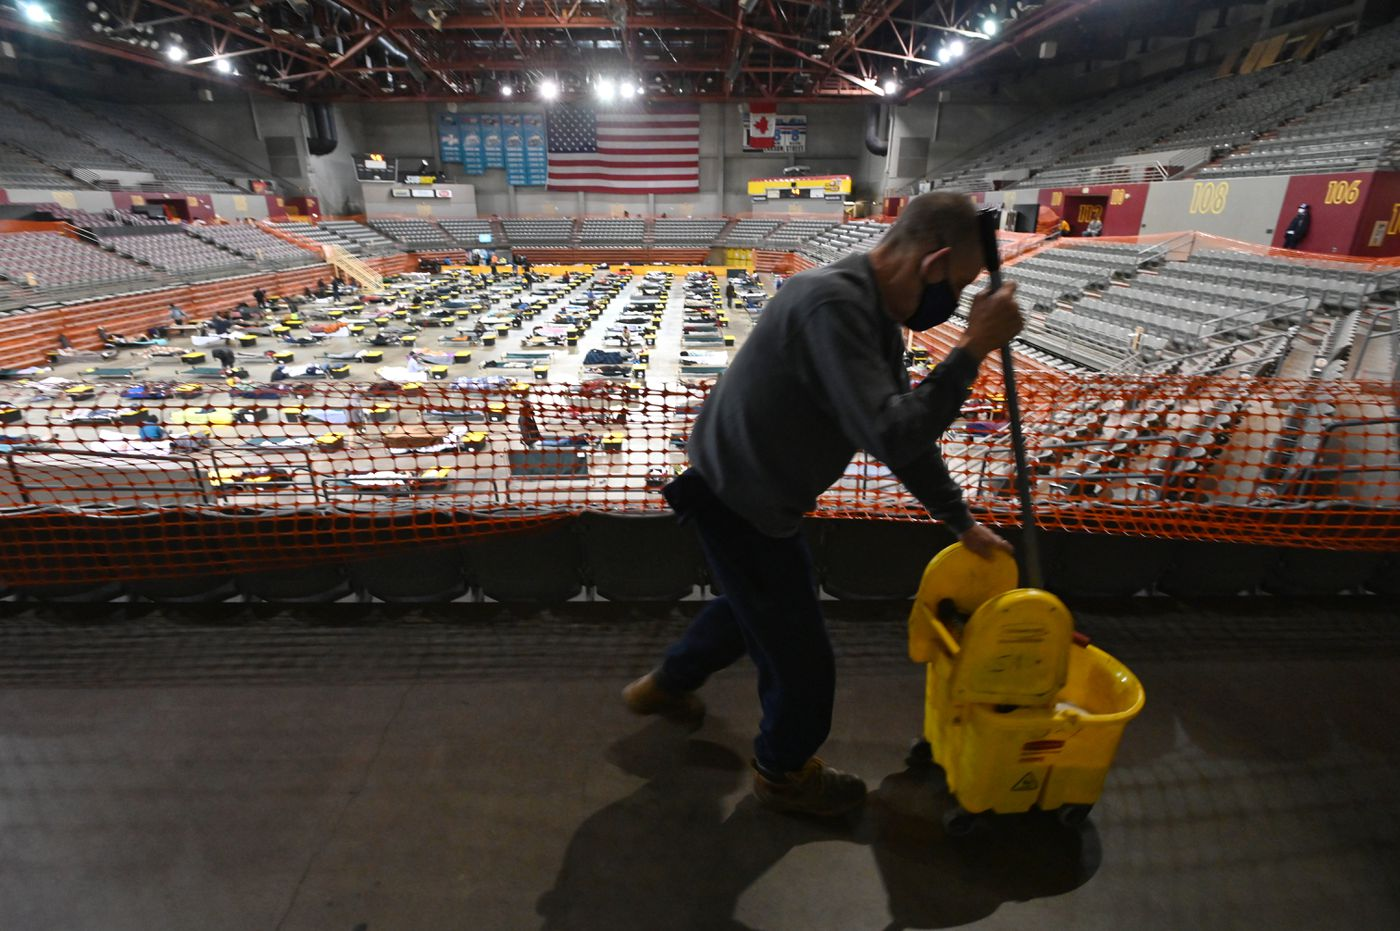 OCTOBER 14. Volunteer Charles Haught mopped around mats used for overflow at the homeless shelter in the Sullivan Arena. (Bill Roth / ADN)